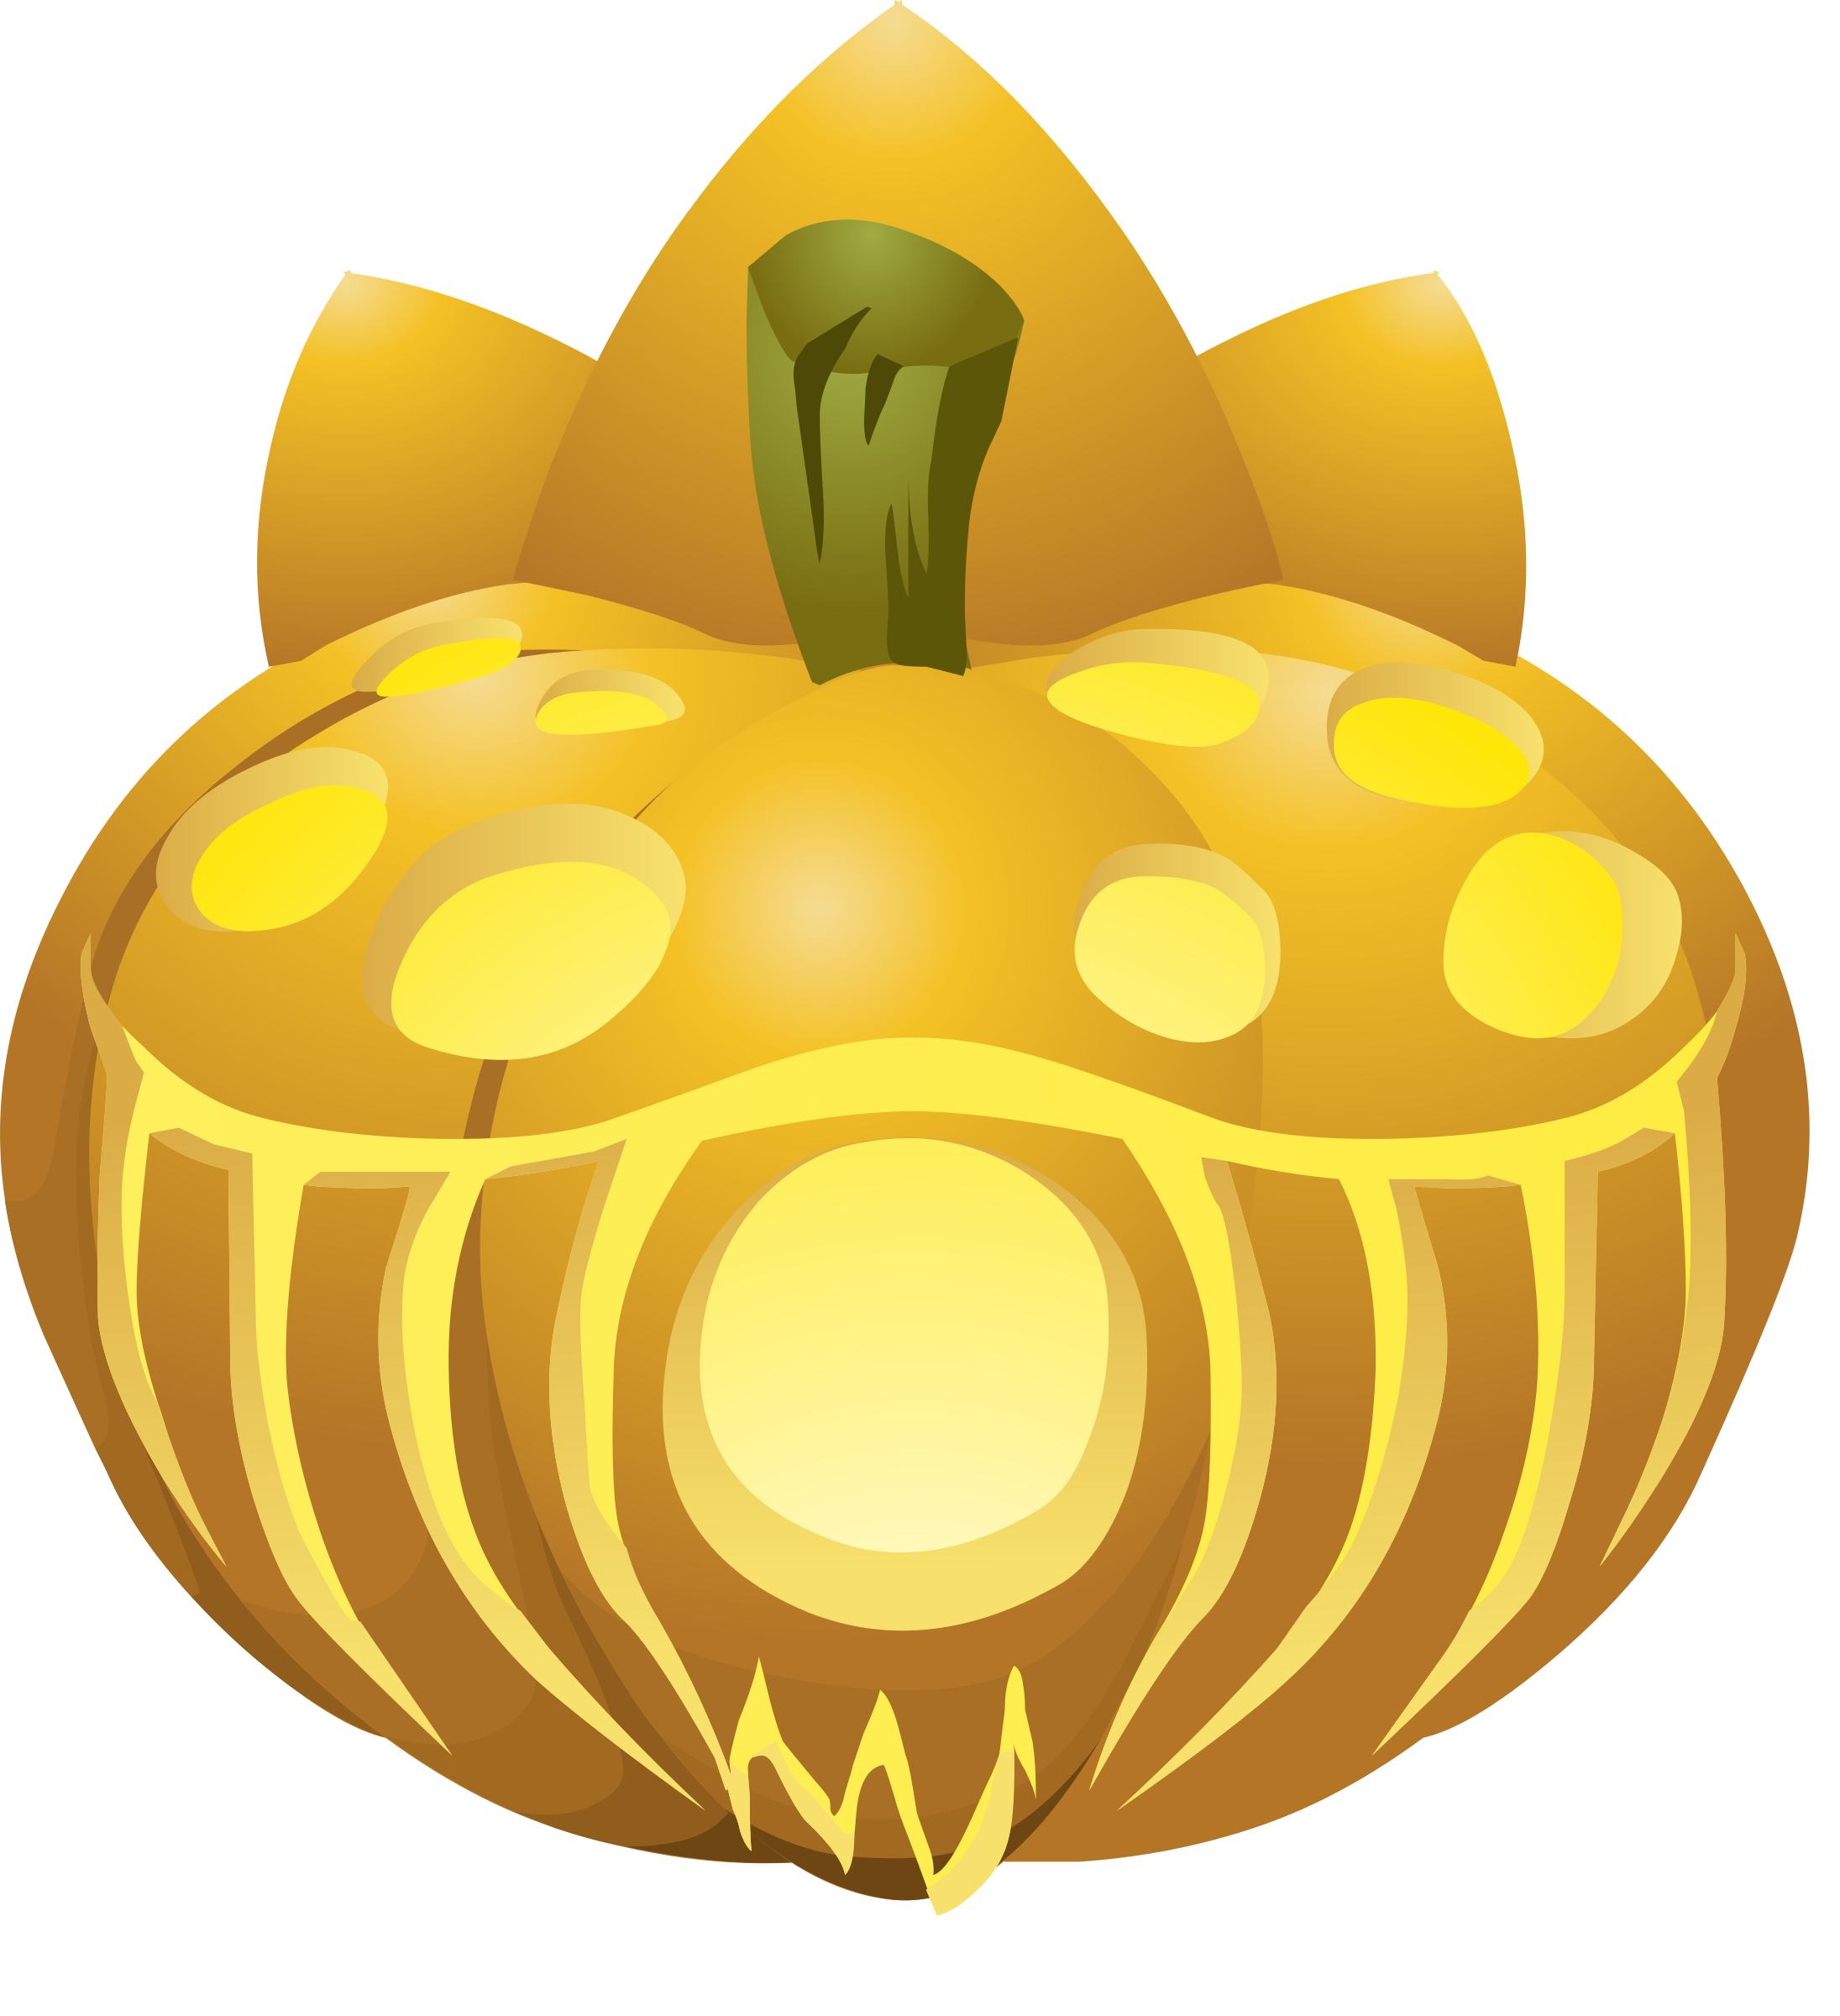 Glitch clipart halloween 5 (PNG) Carved Lit Pumpkins